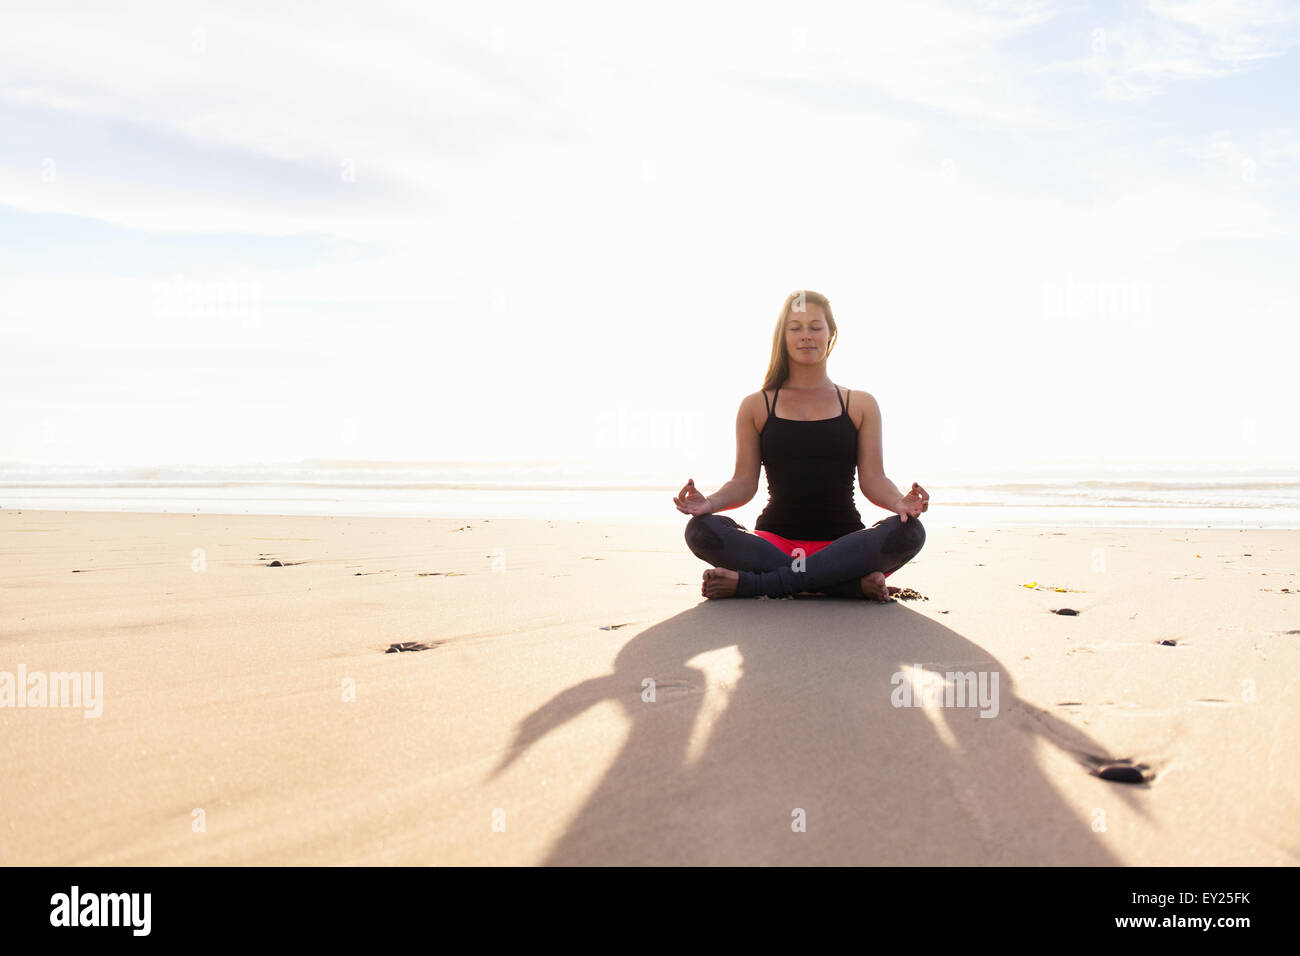 Woman in yoga pose on beach - Stock Image